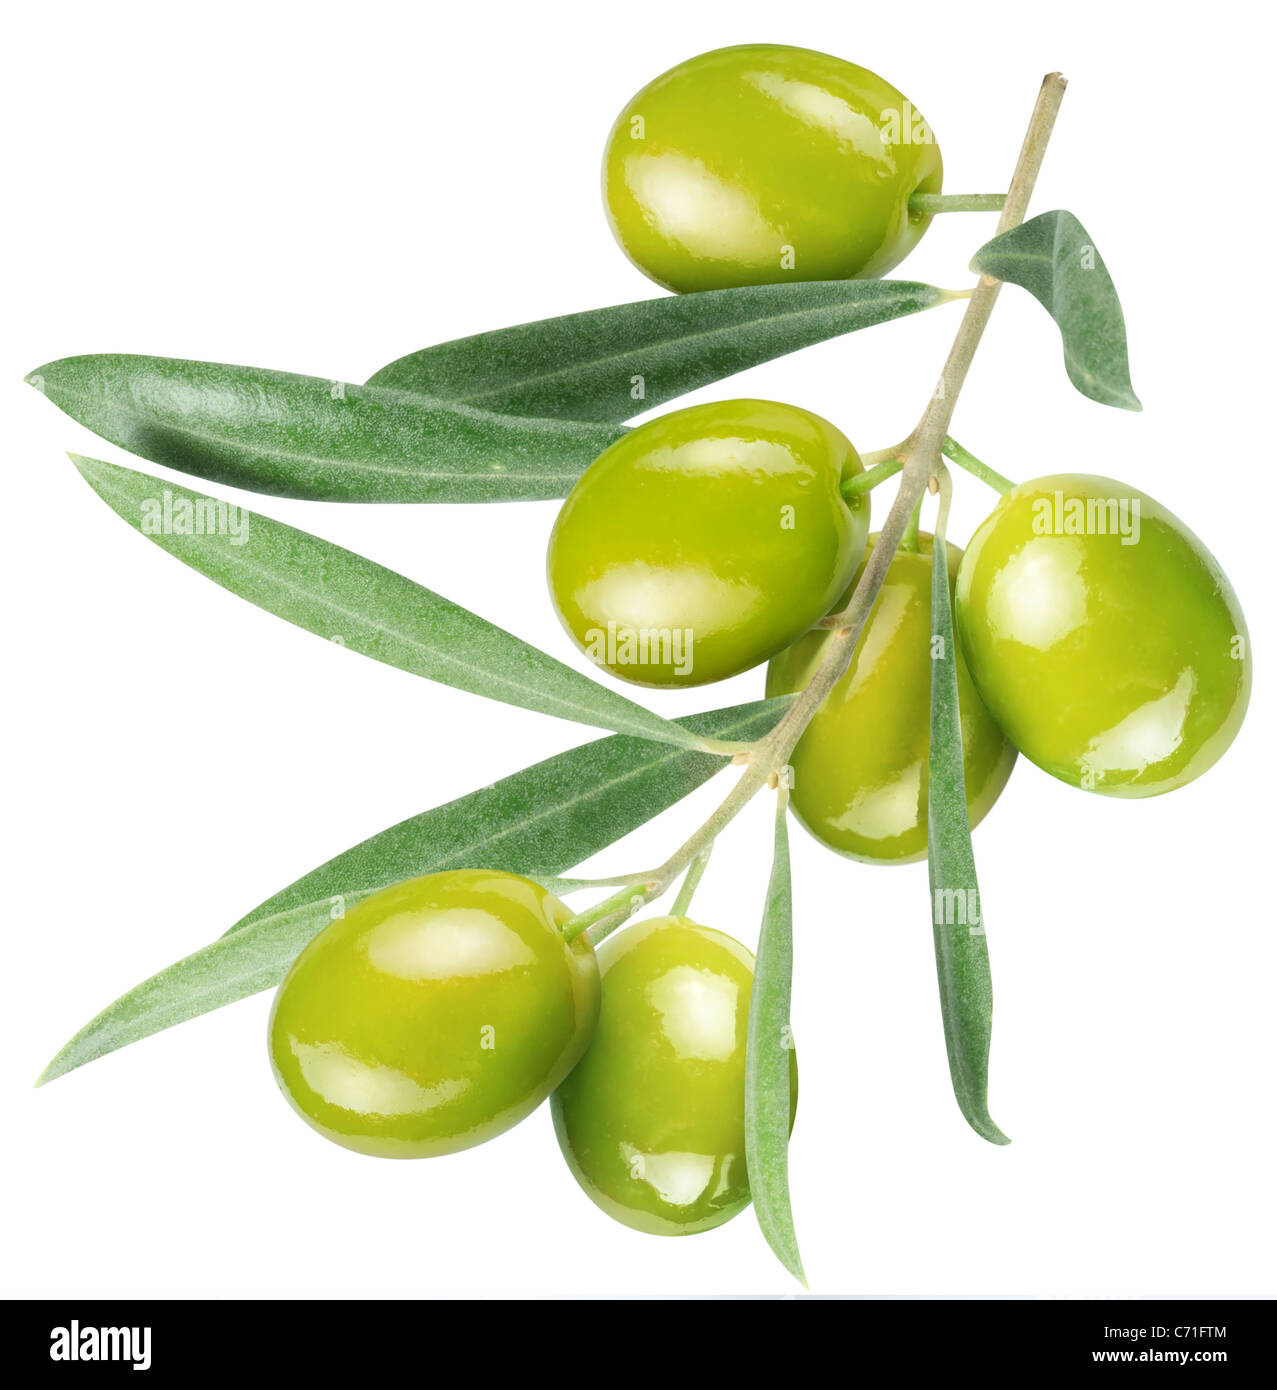 Olives on branch with leaves isolated on white. File contains a path to cut. - Stock Image